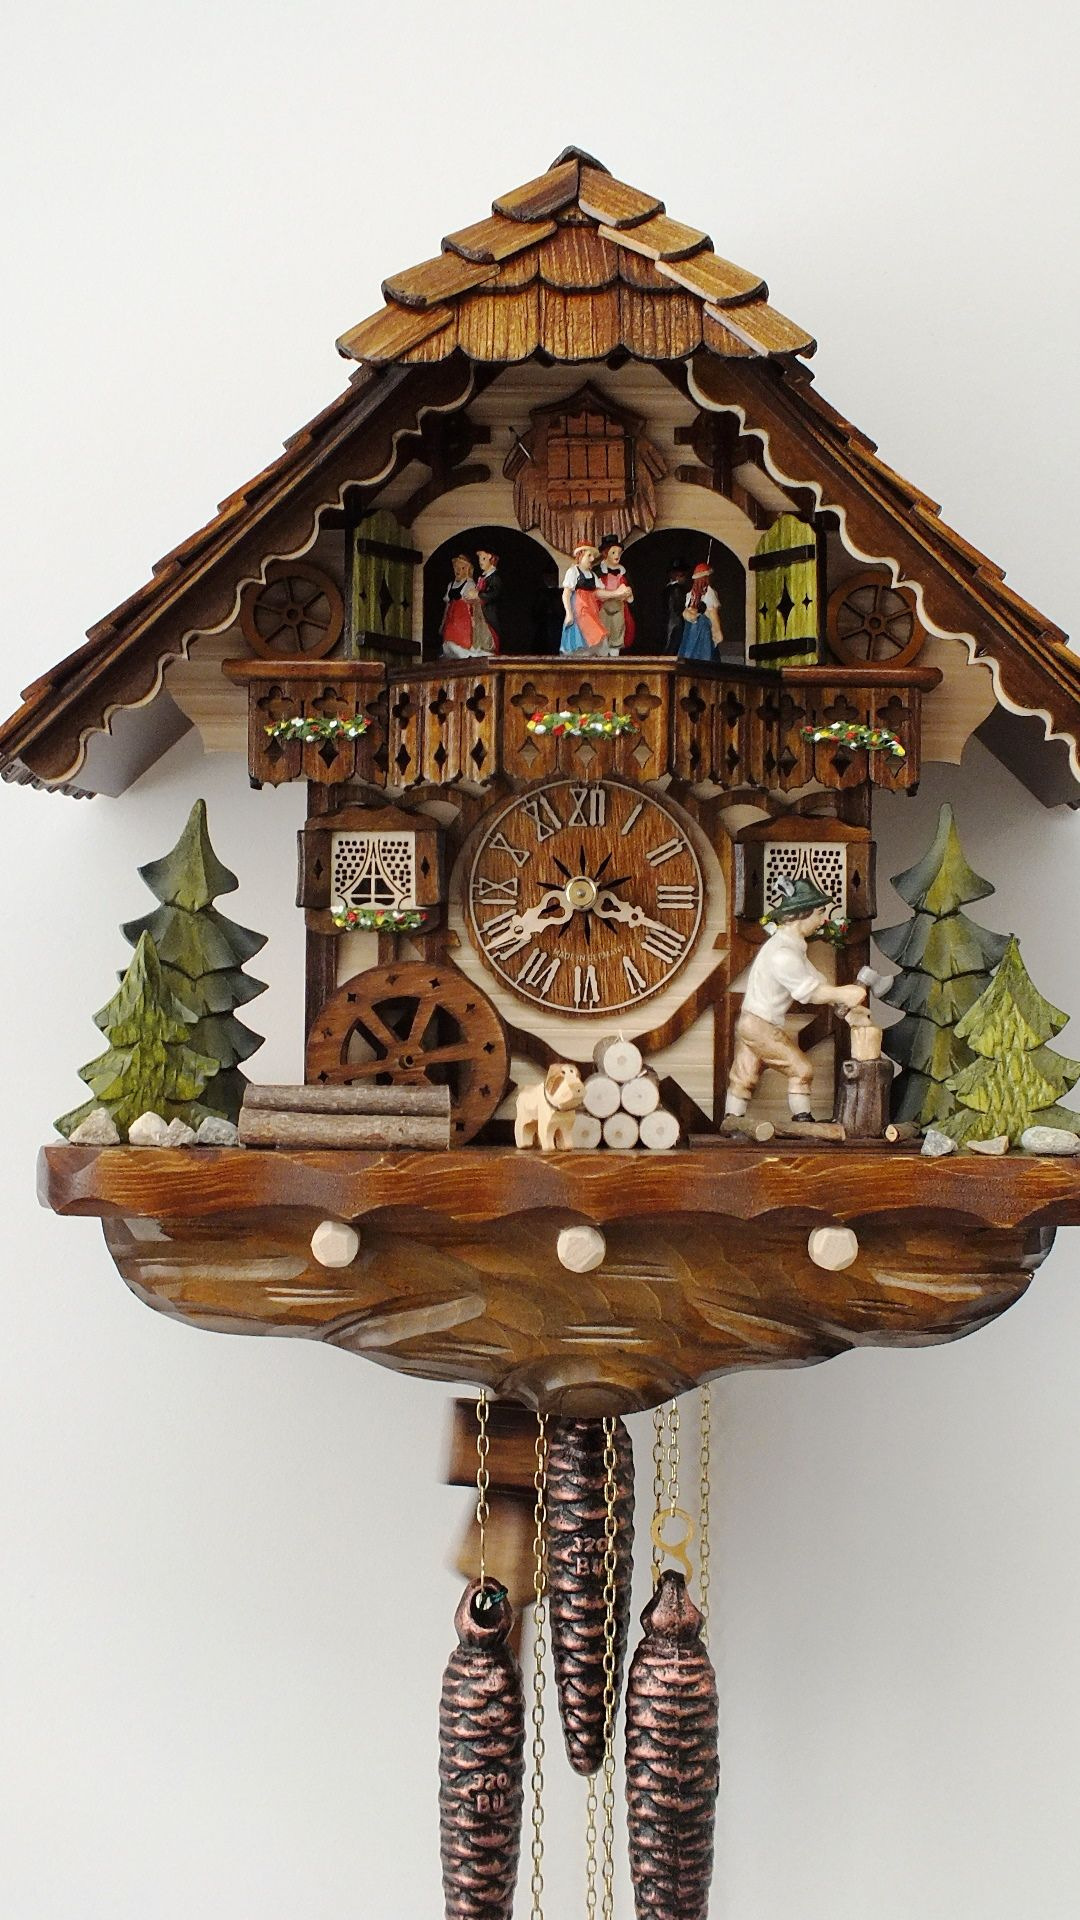 Cool Cuckoo Clocks Cuckoo Clock Black Forest Germany Something From My